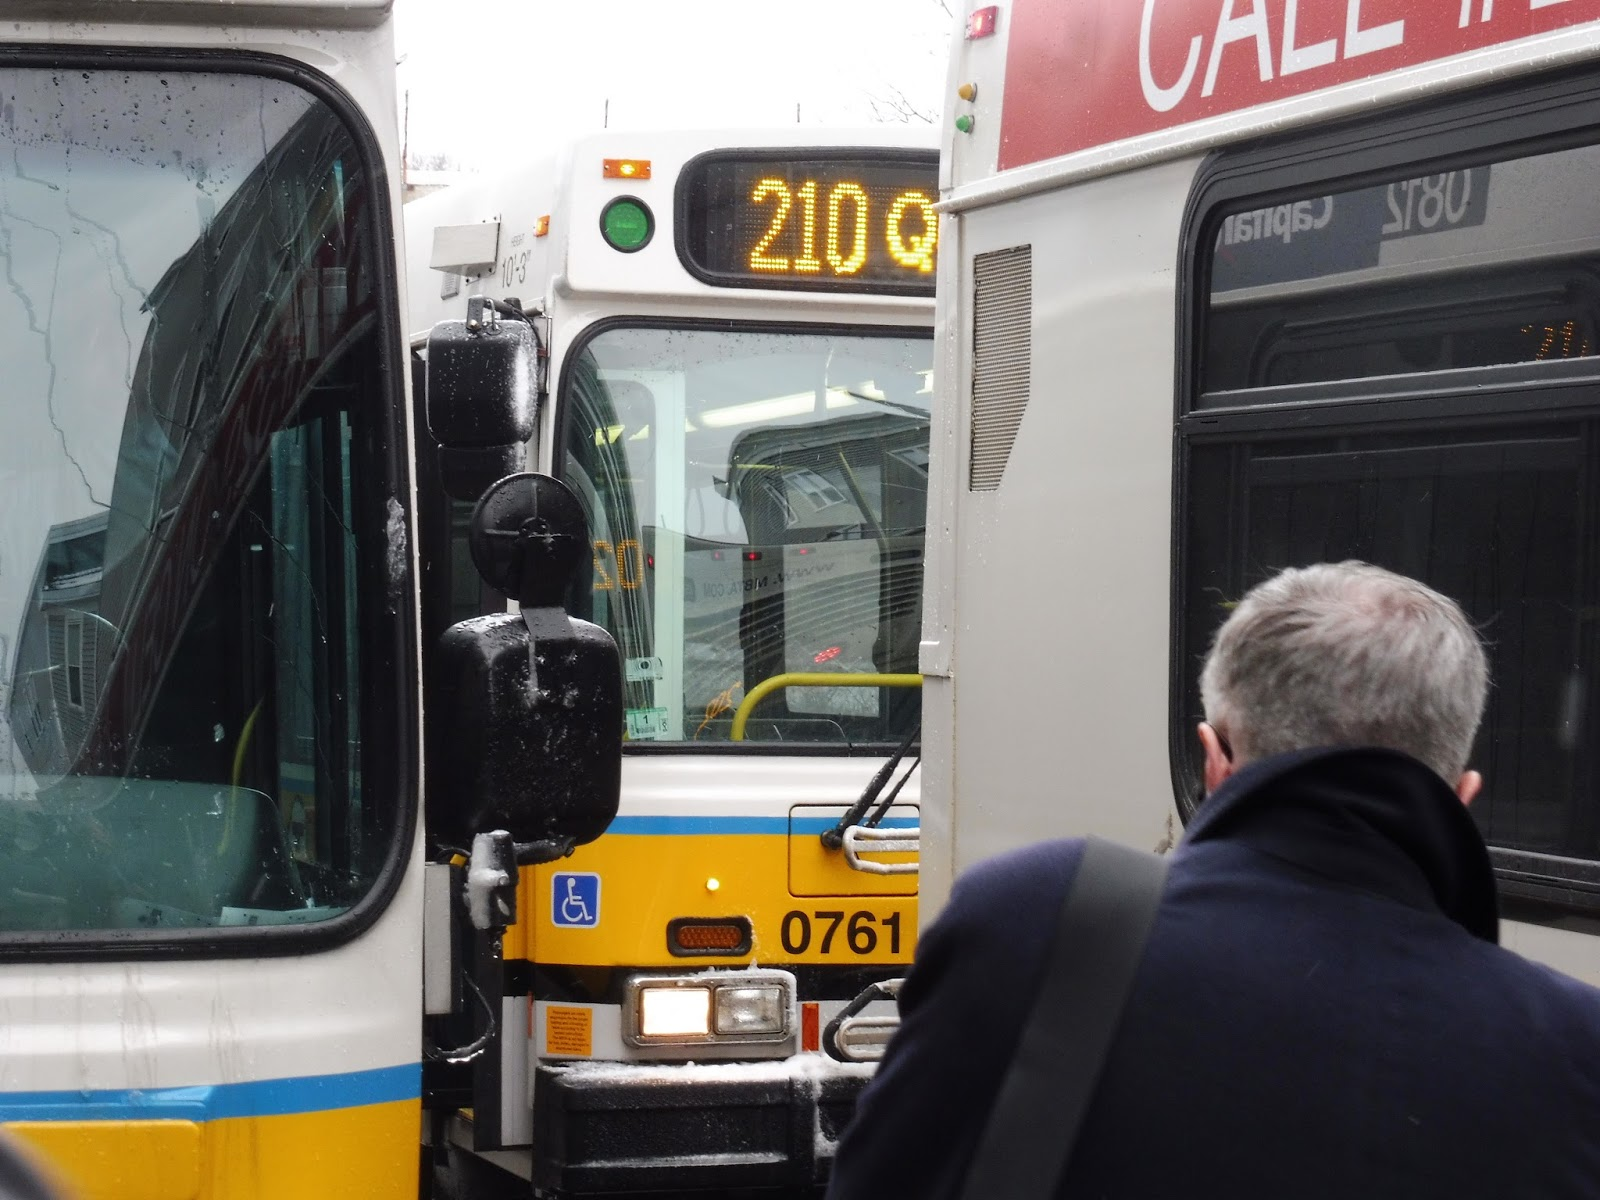 Miles on the MBTA: 210 (Quincy Center Station - North Quincy